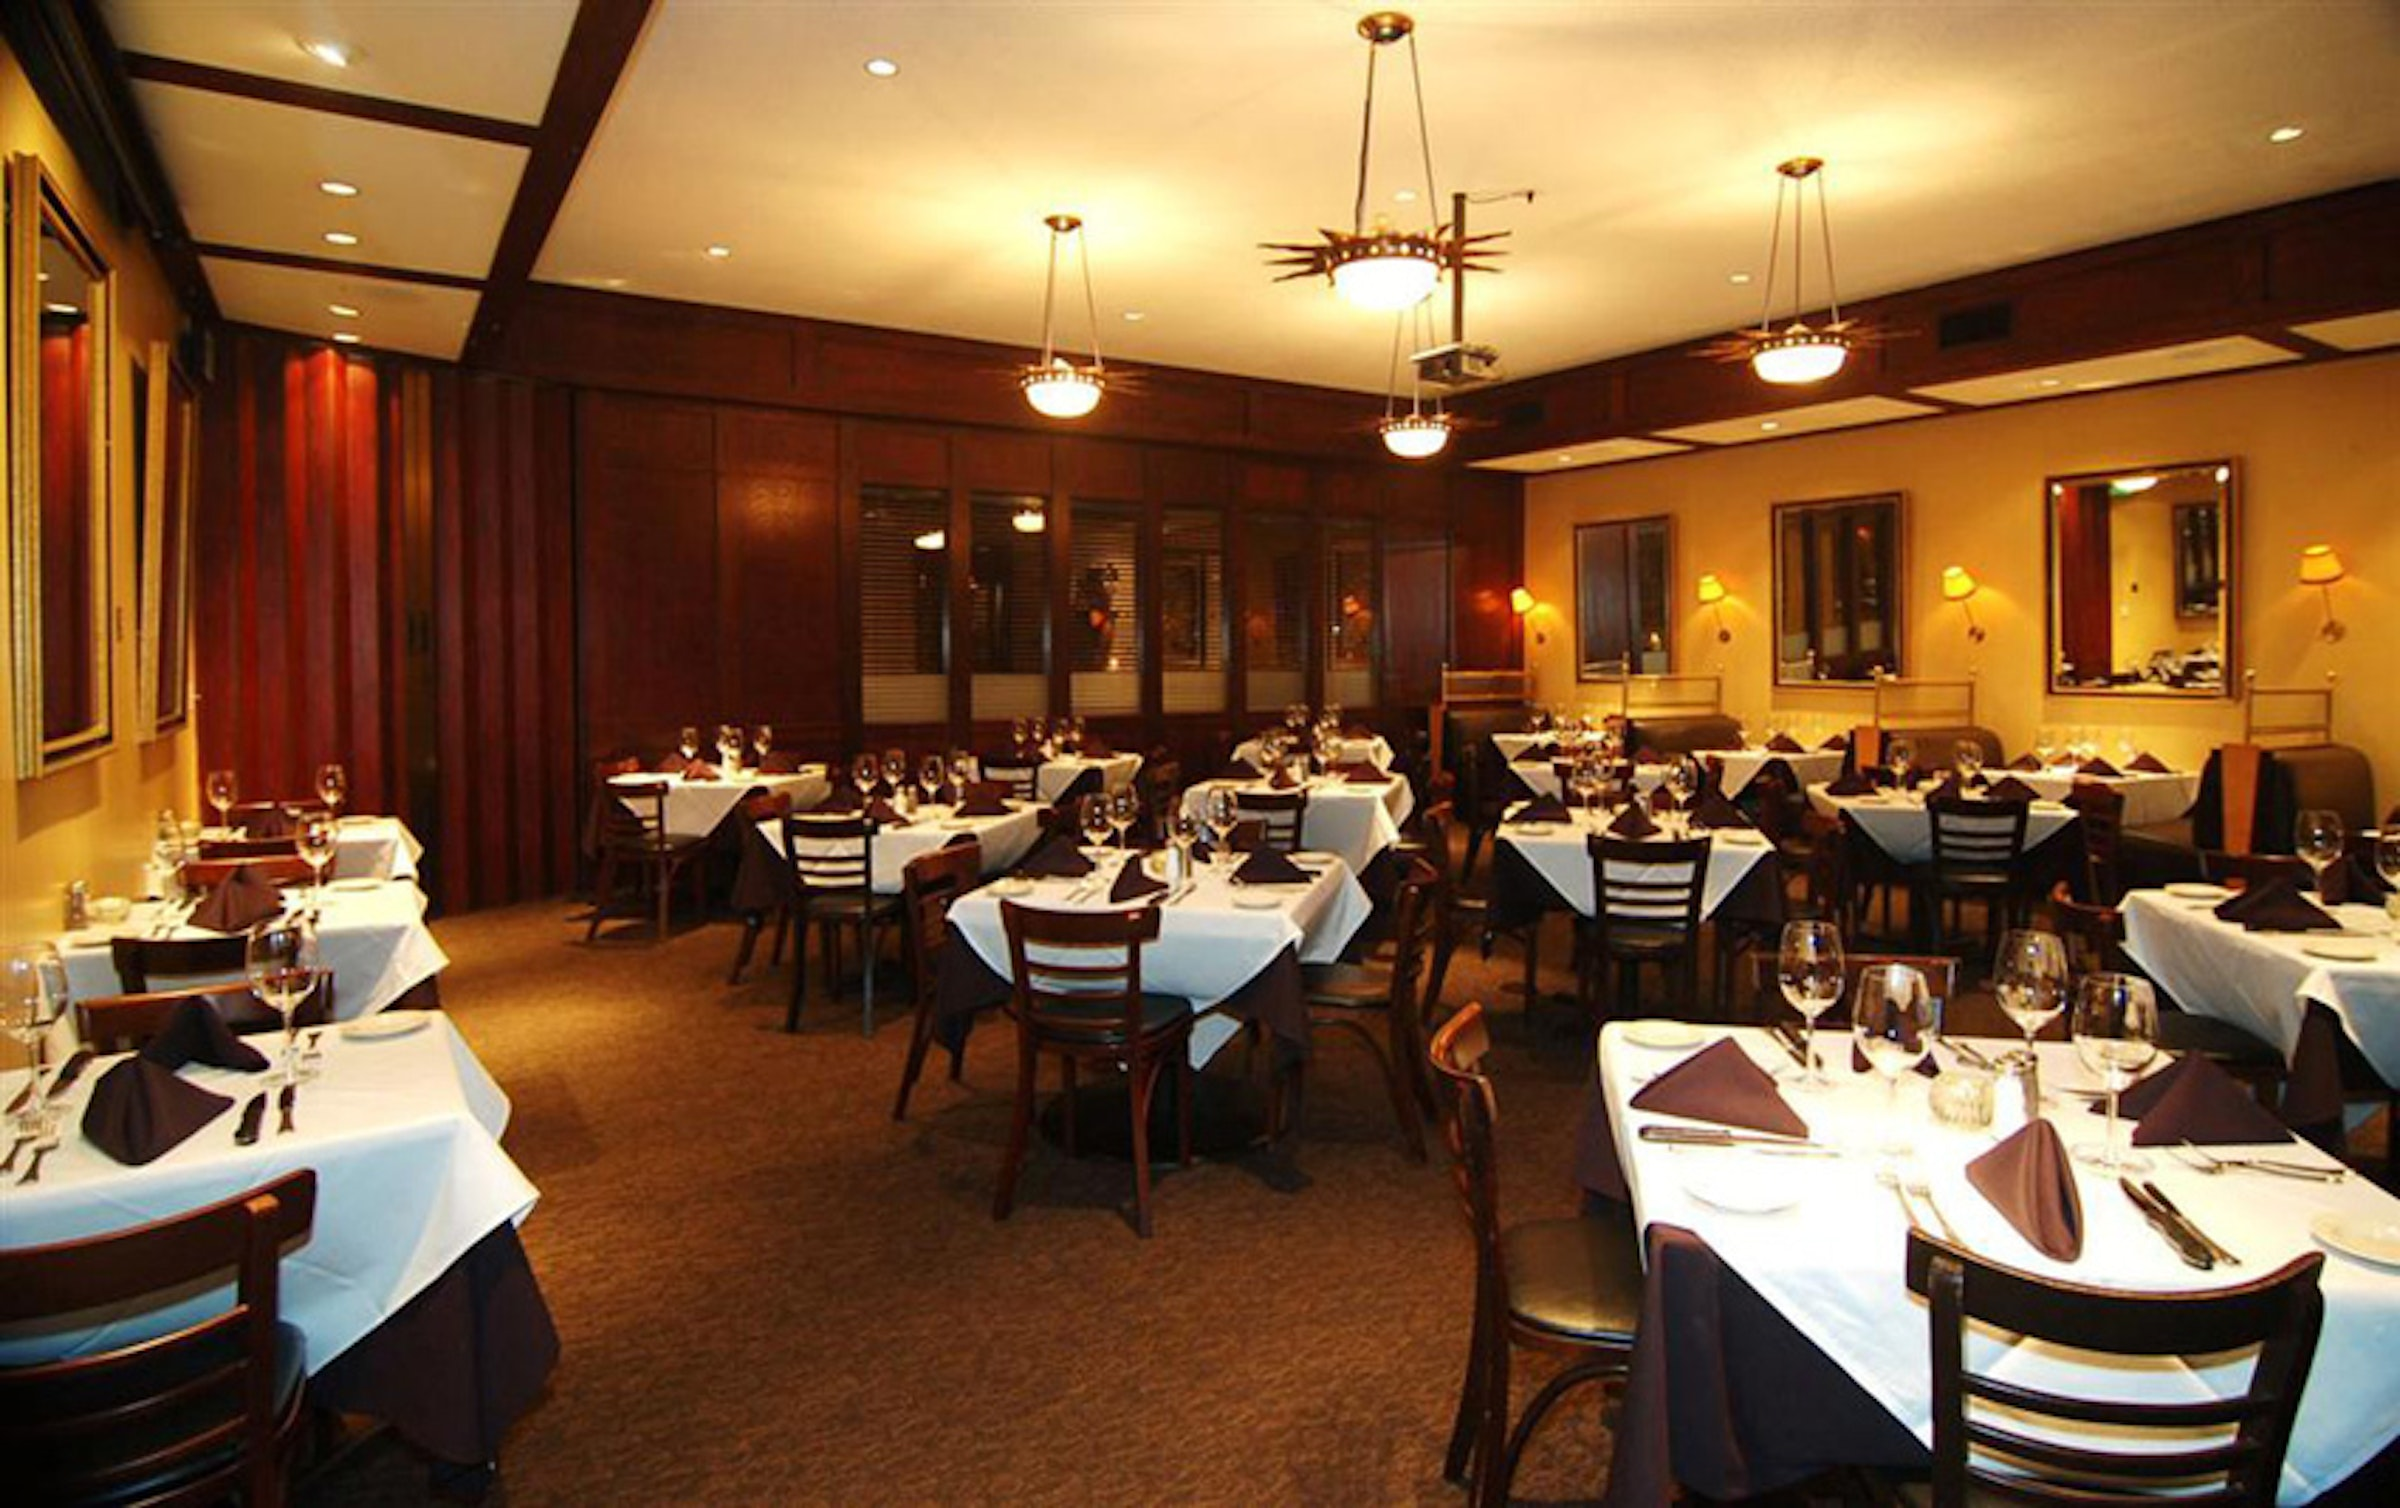 Chamberlain's Steak and Chop House in Beyond Dallas